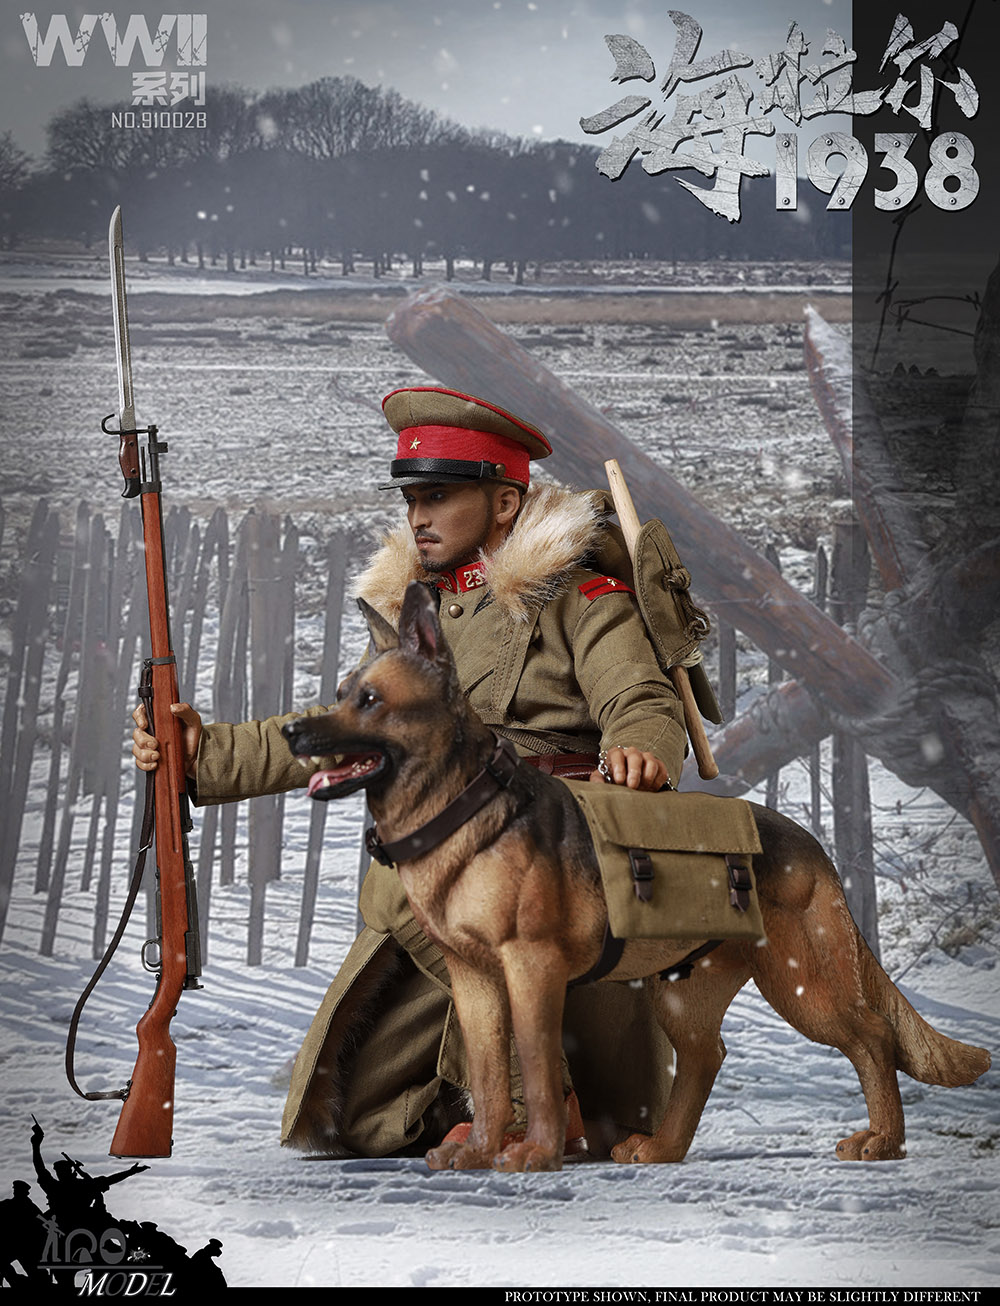 japanese - NEW PRODUCT: IQO Model: 1/6 WWII Series 1938 Hailar Scout (NO.91002A, B) 22114511